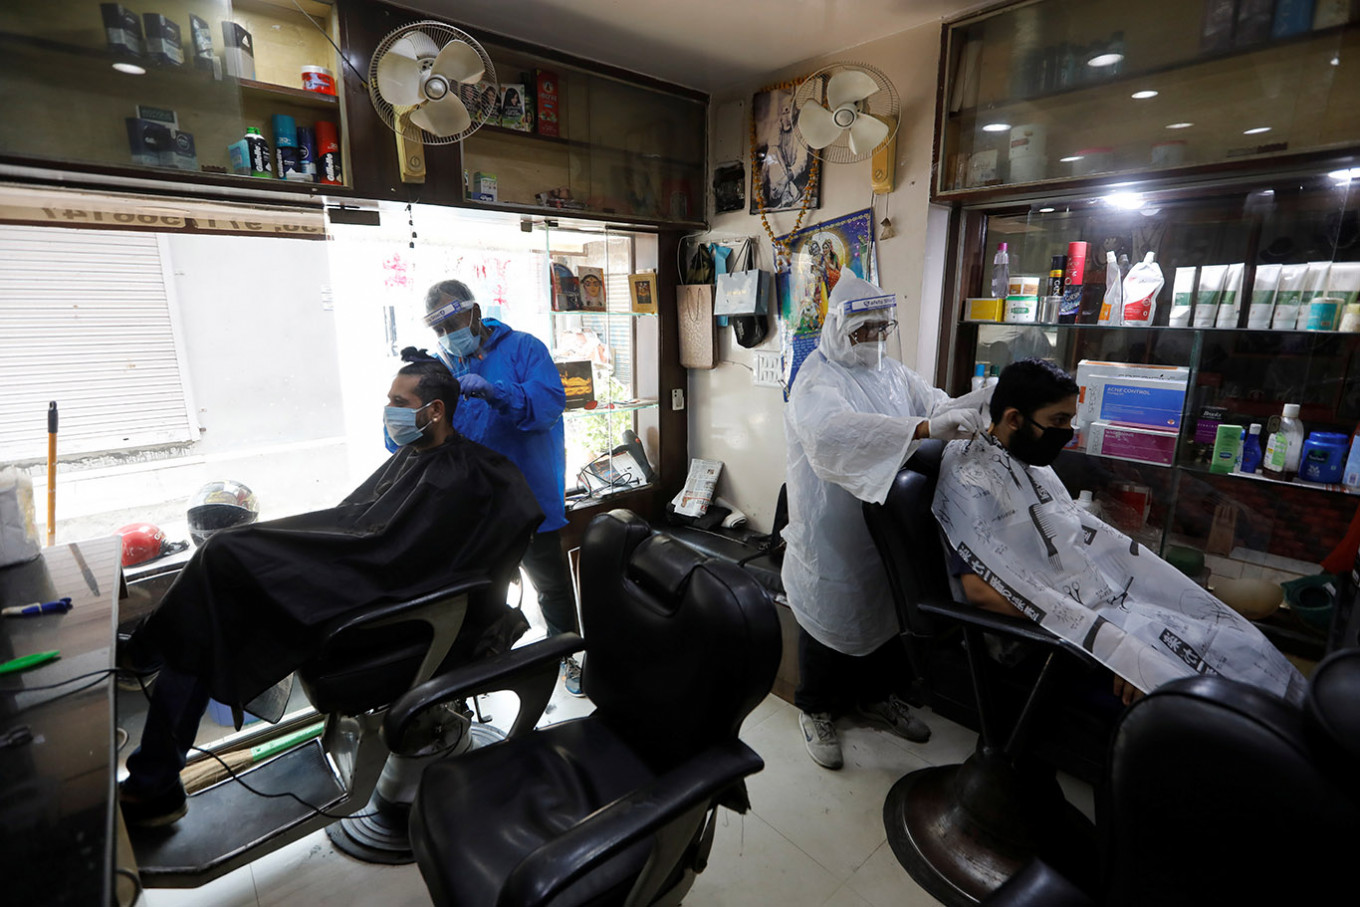 India reopens more public spaces despite record virus infections